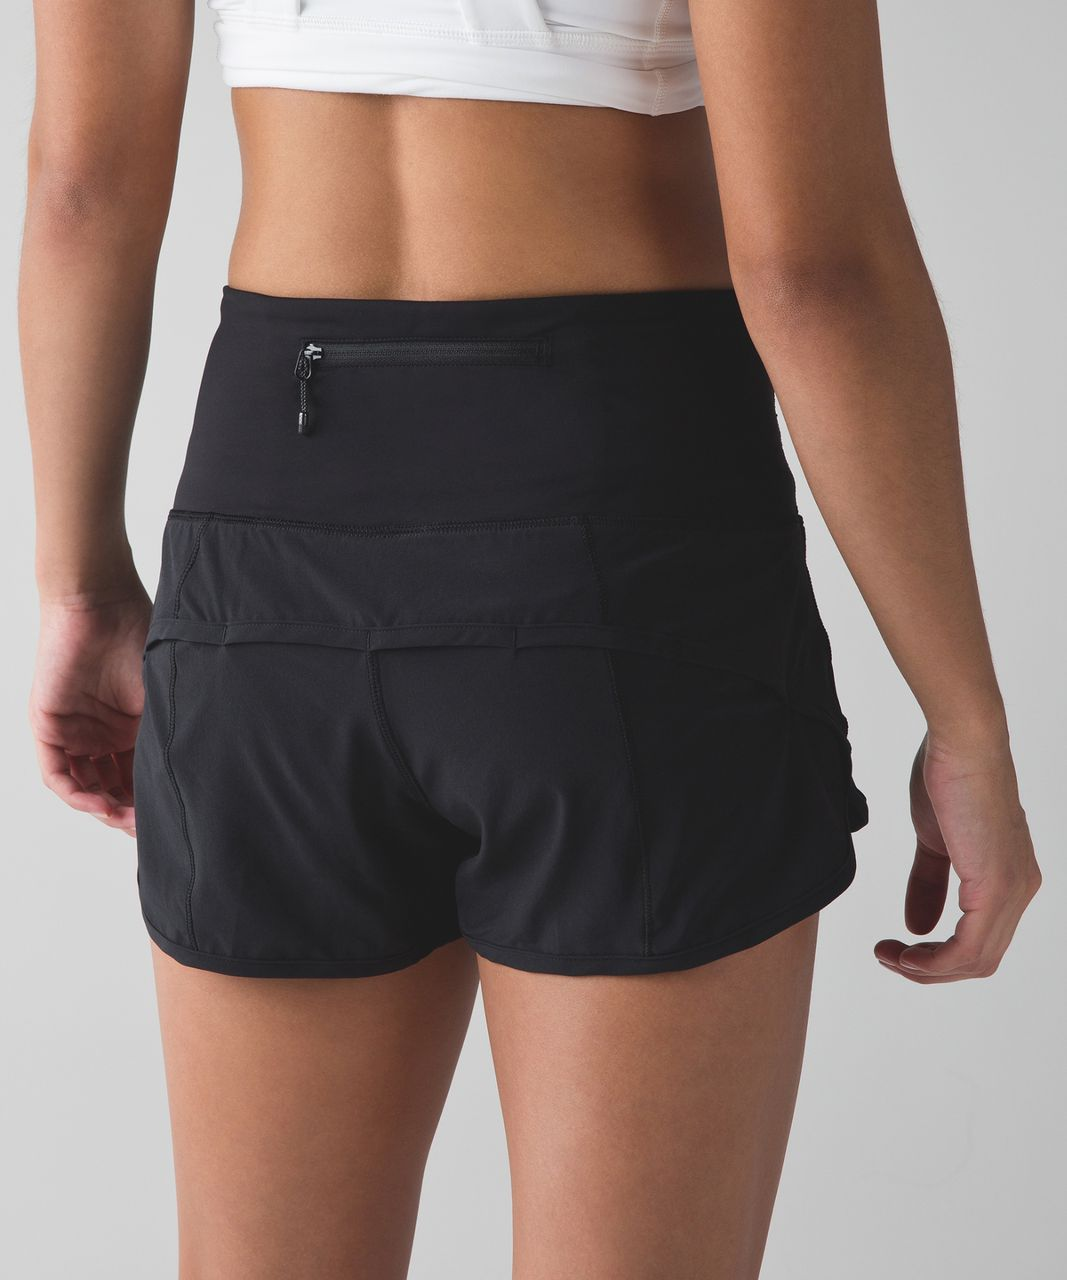 Lululemon Speed Short (High Waist) - Black